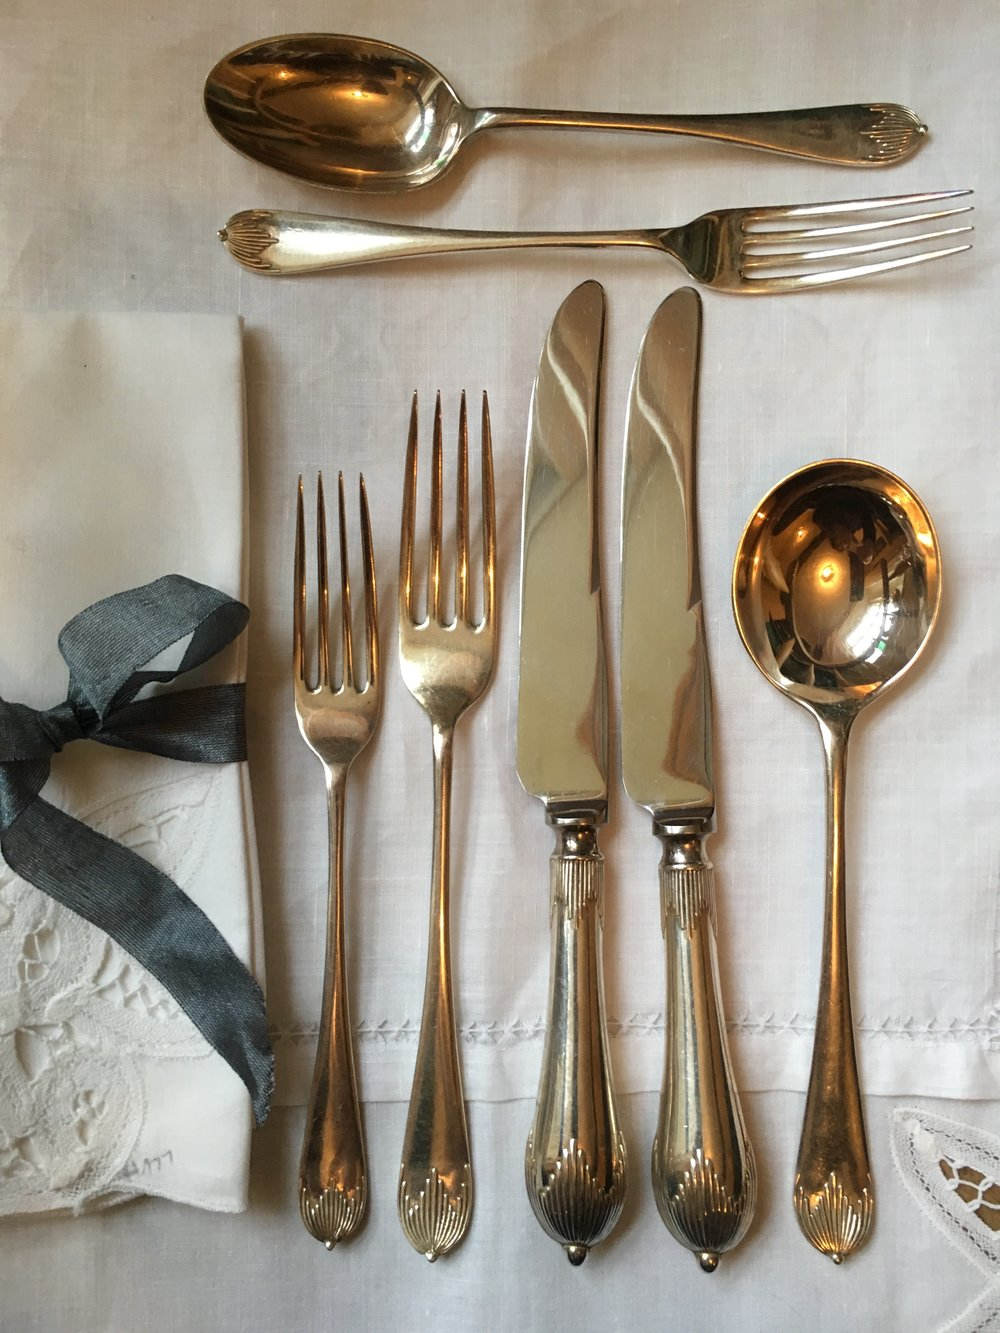 Silver plated, Georgian style place setting.